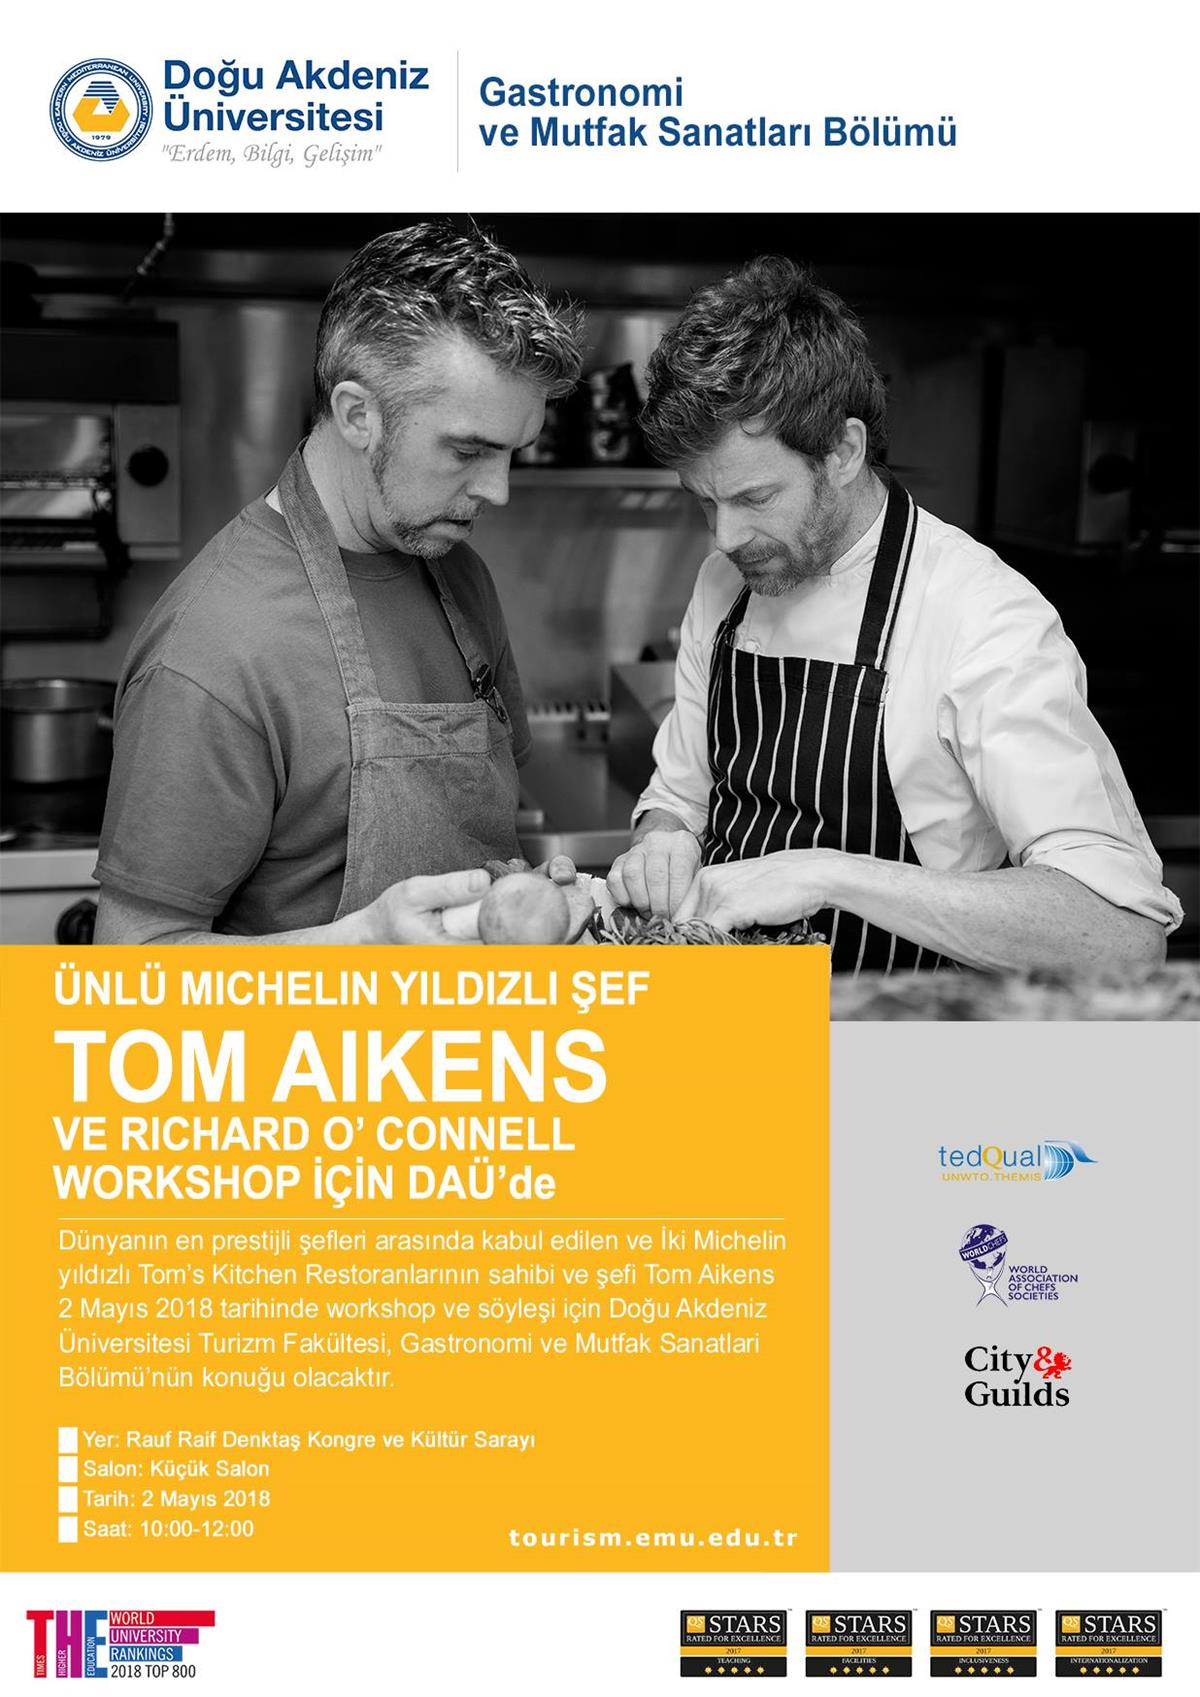 Chef Tom Aikens and Chef Richard O